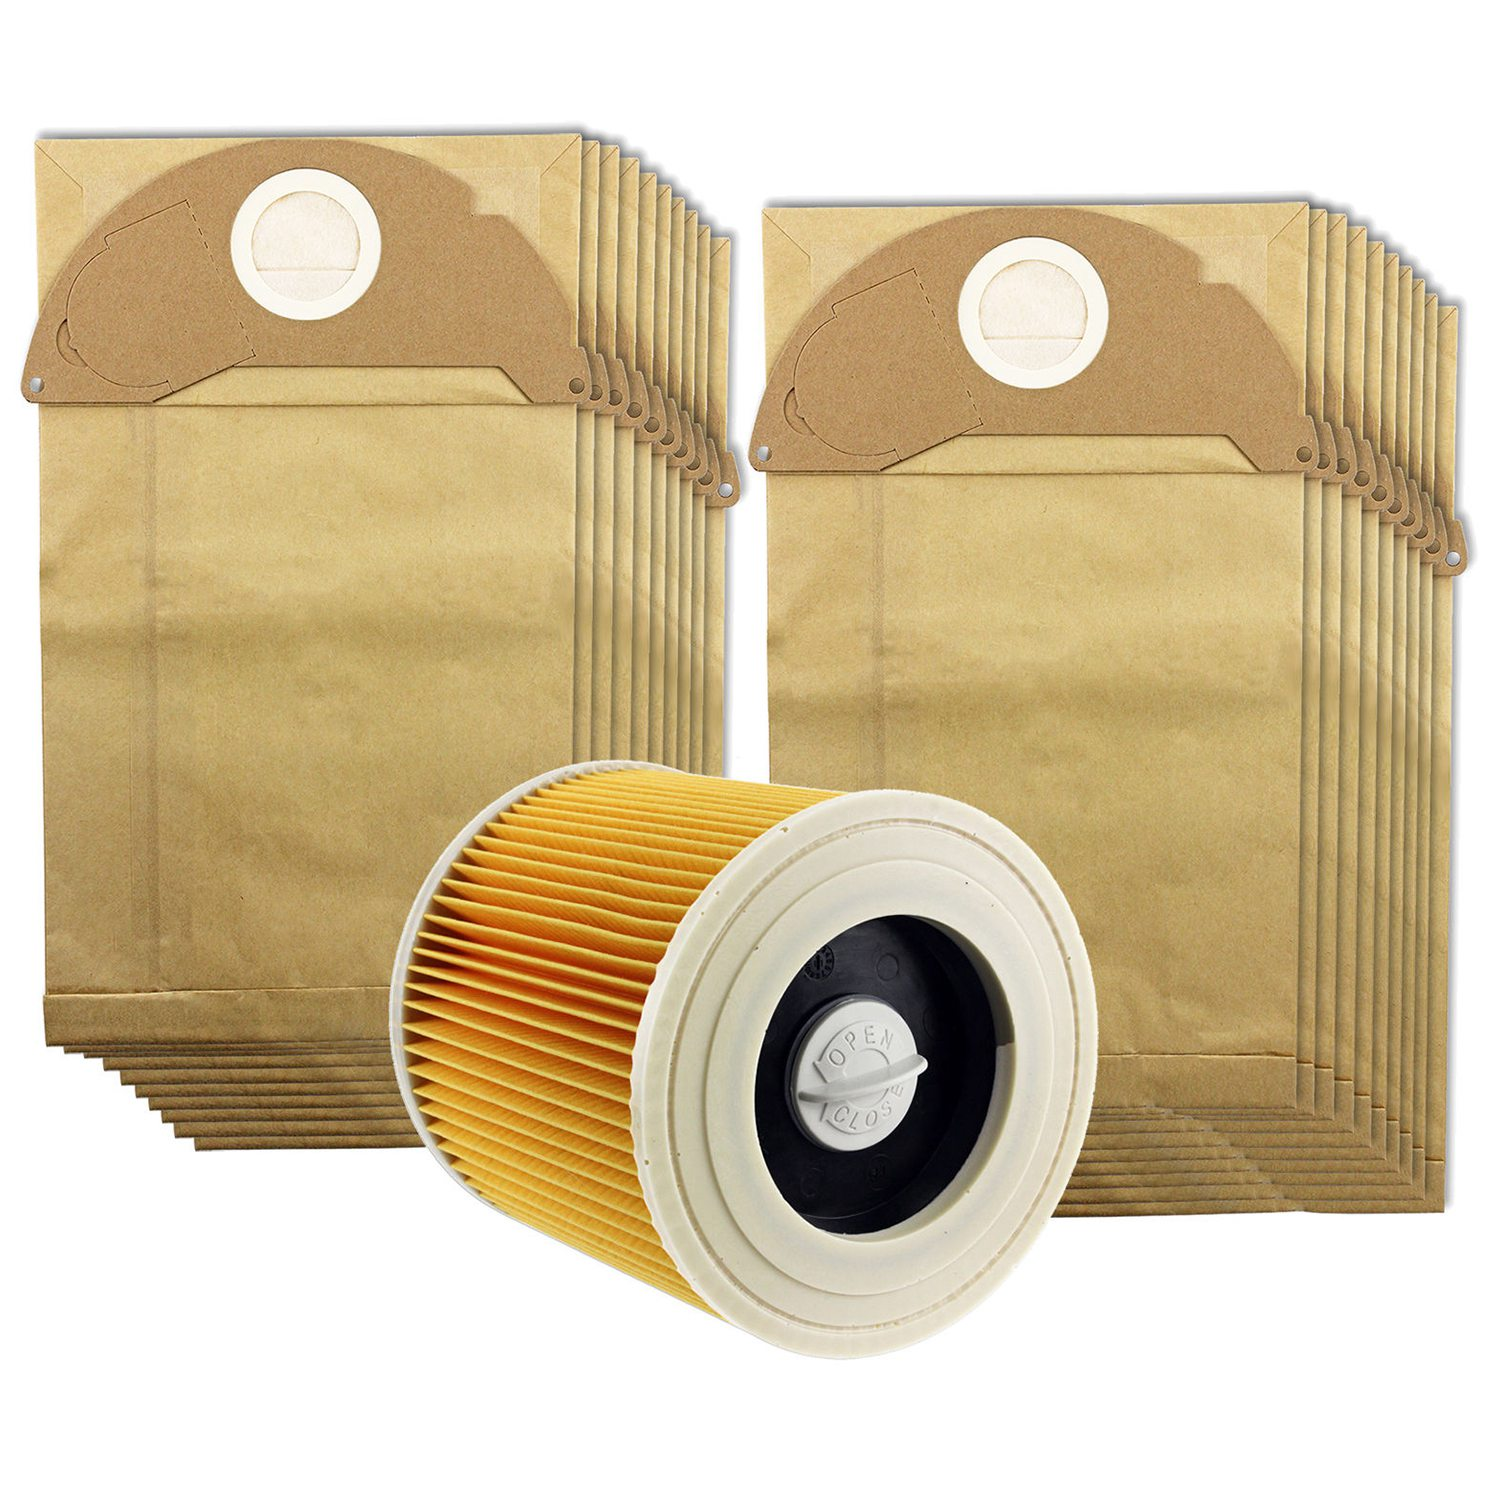 5 x Filtered Dust Bags Double Walled for KARCHER MV2 IPX4 WD2 Vacuum Cleaner